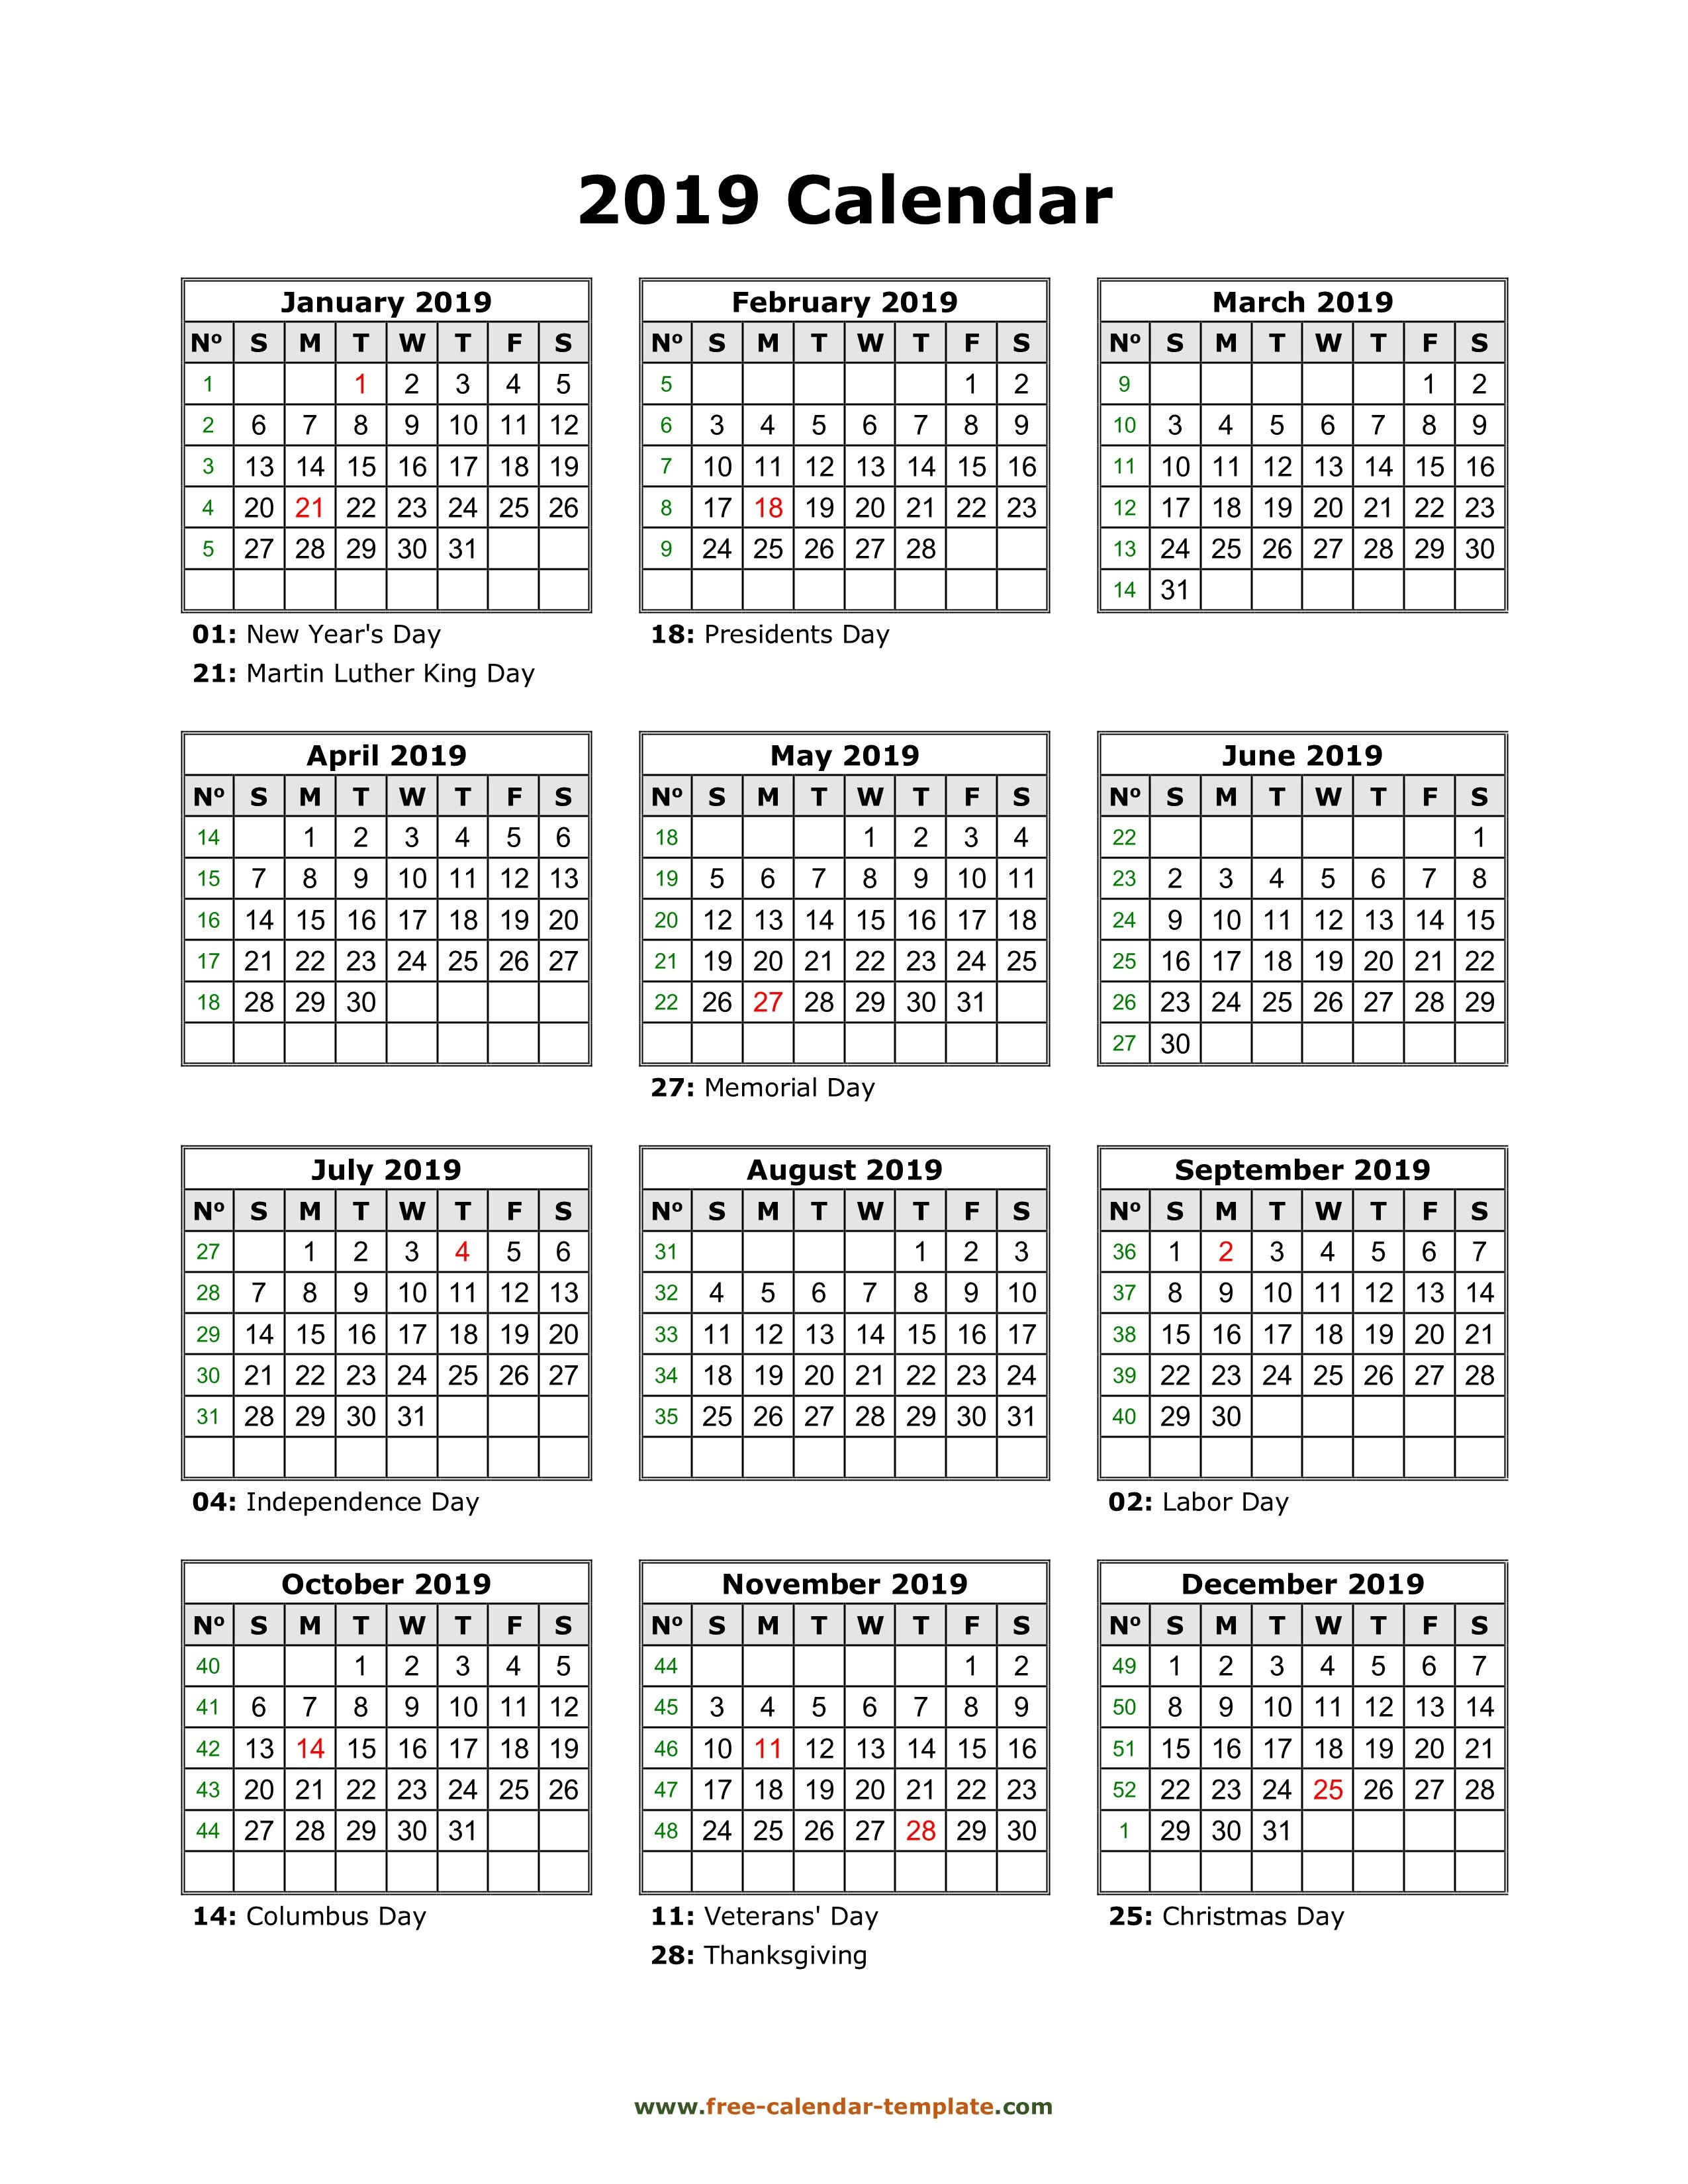 Yearly Printable Calendar 2019 With Holidays | Free Calendar Calendar 2019 View